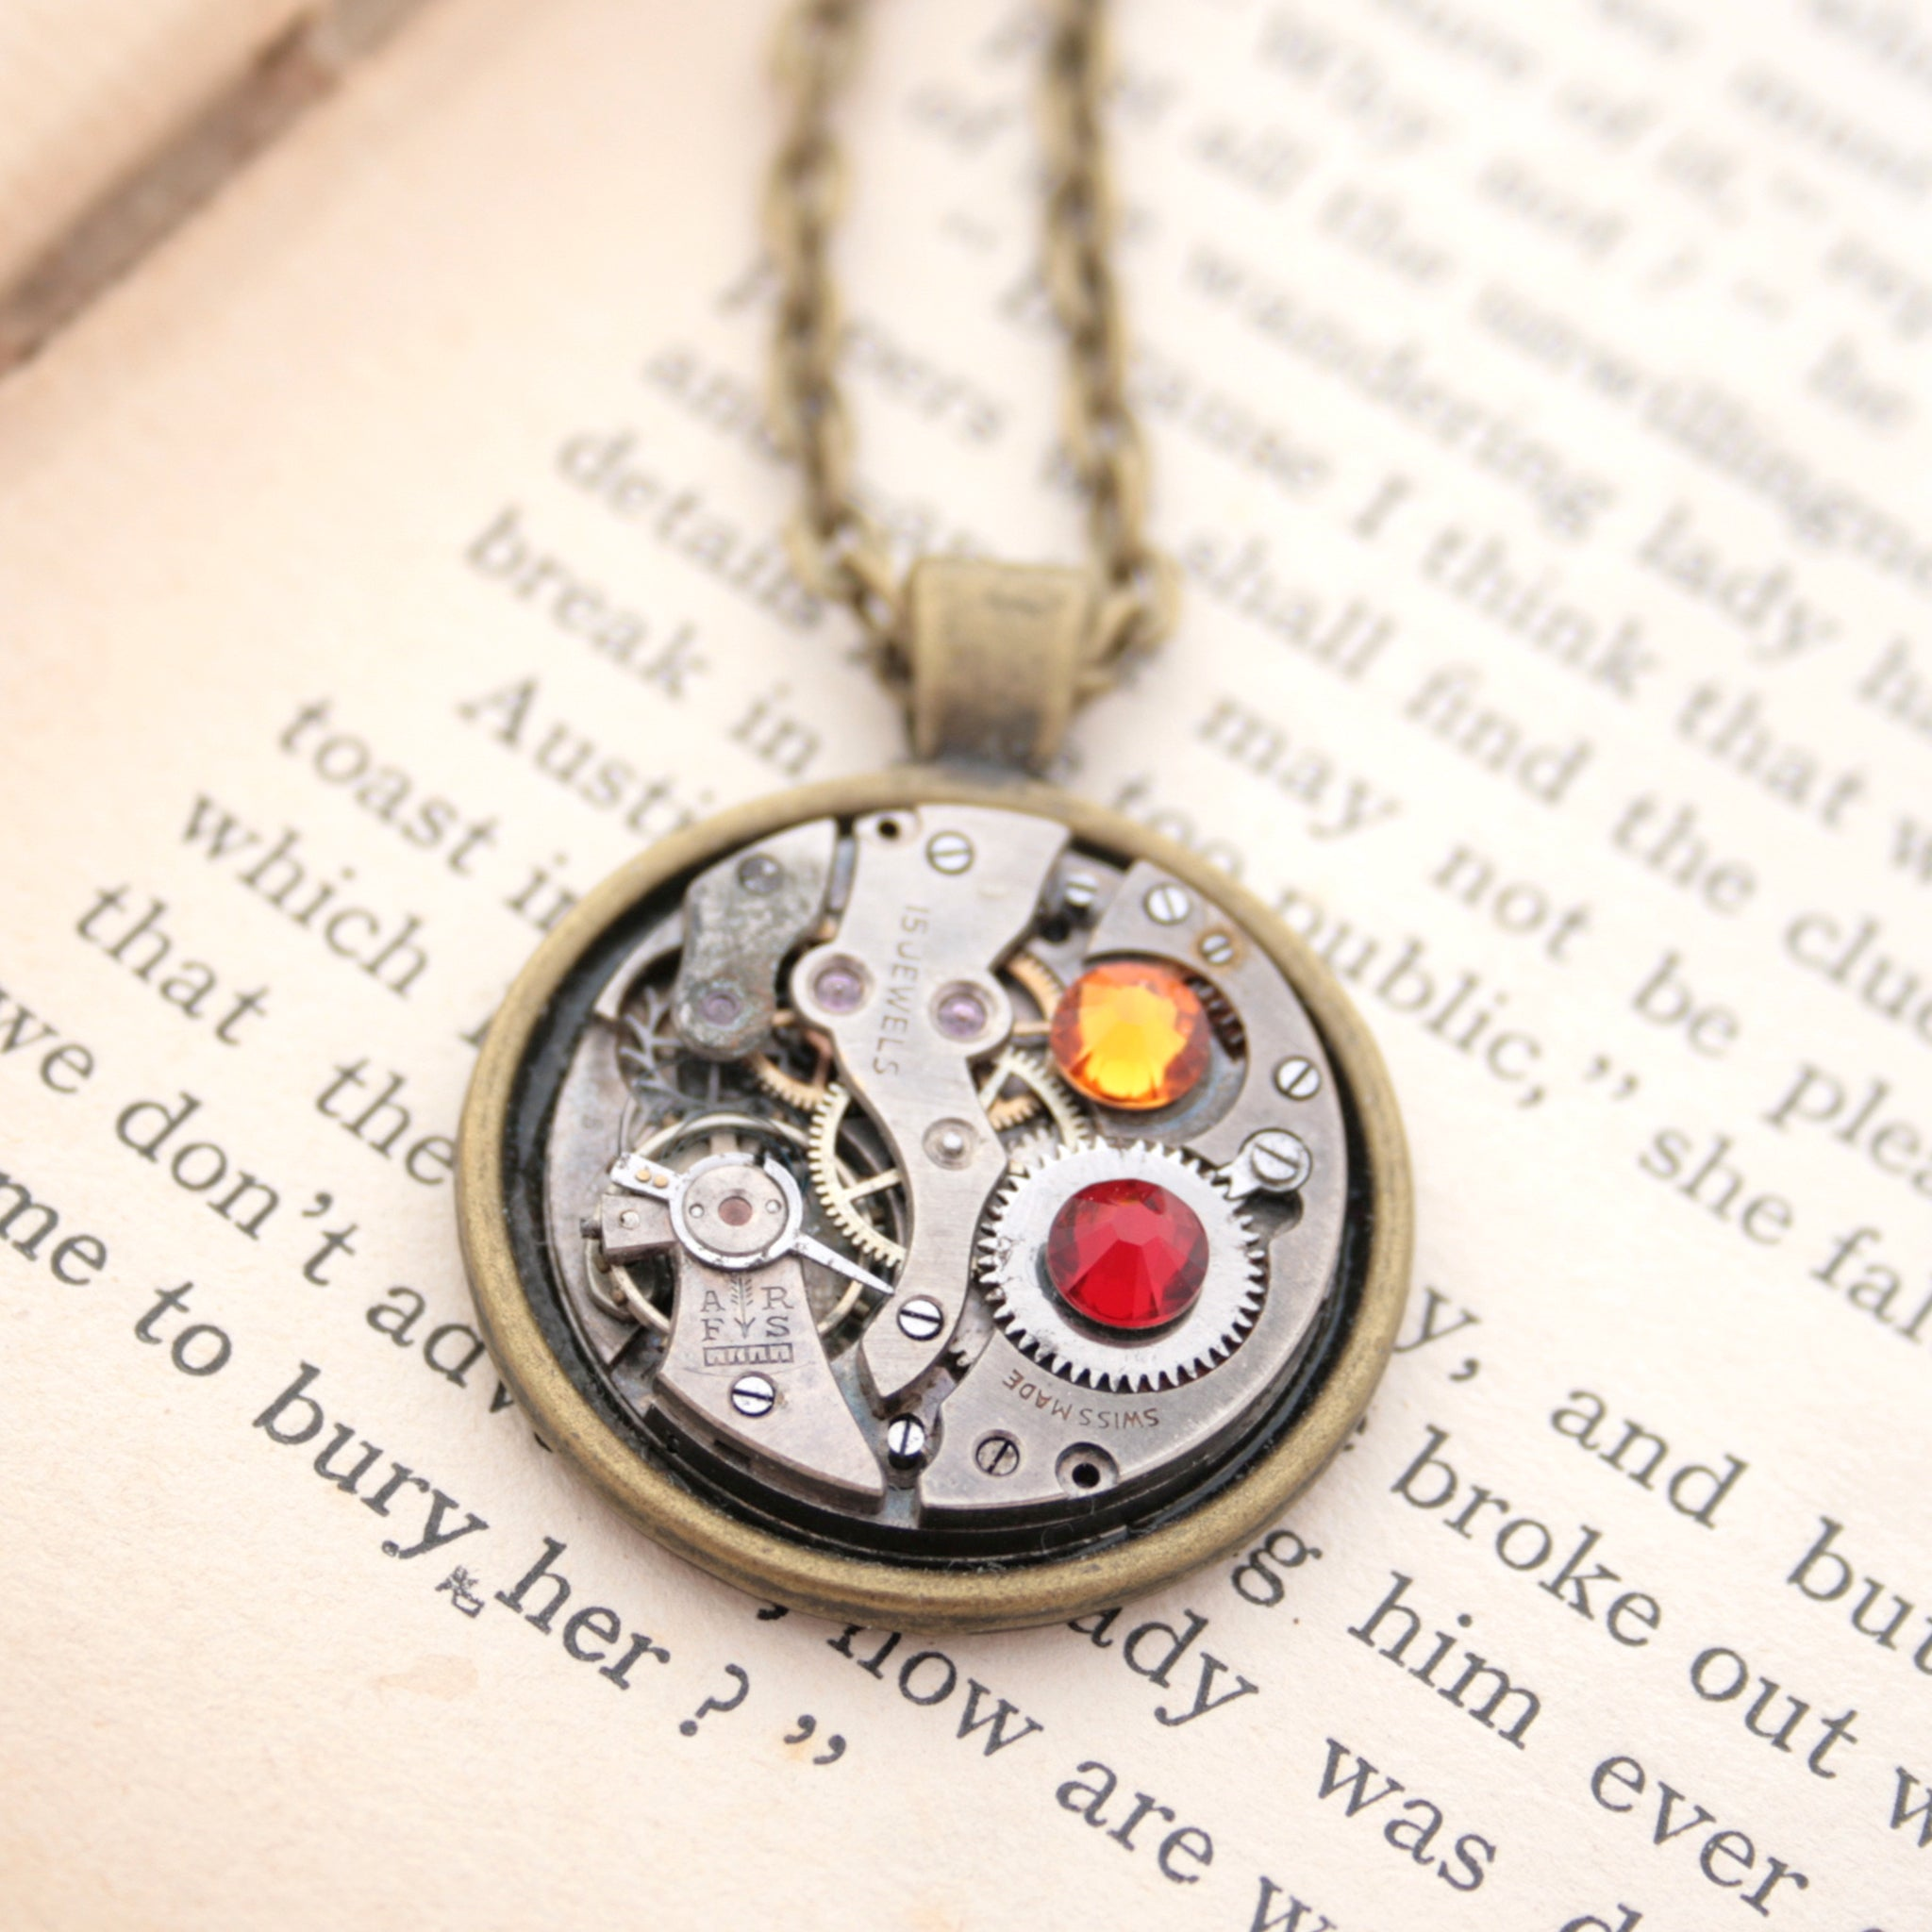 Dark academia necklace made of watch mechanism and Swarovski crystals